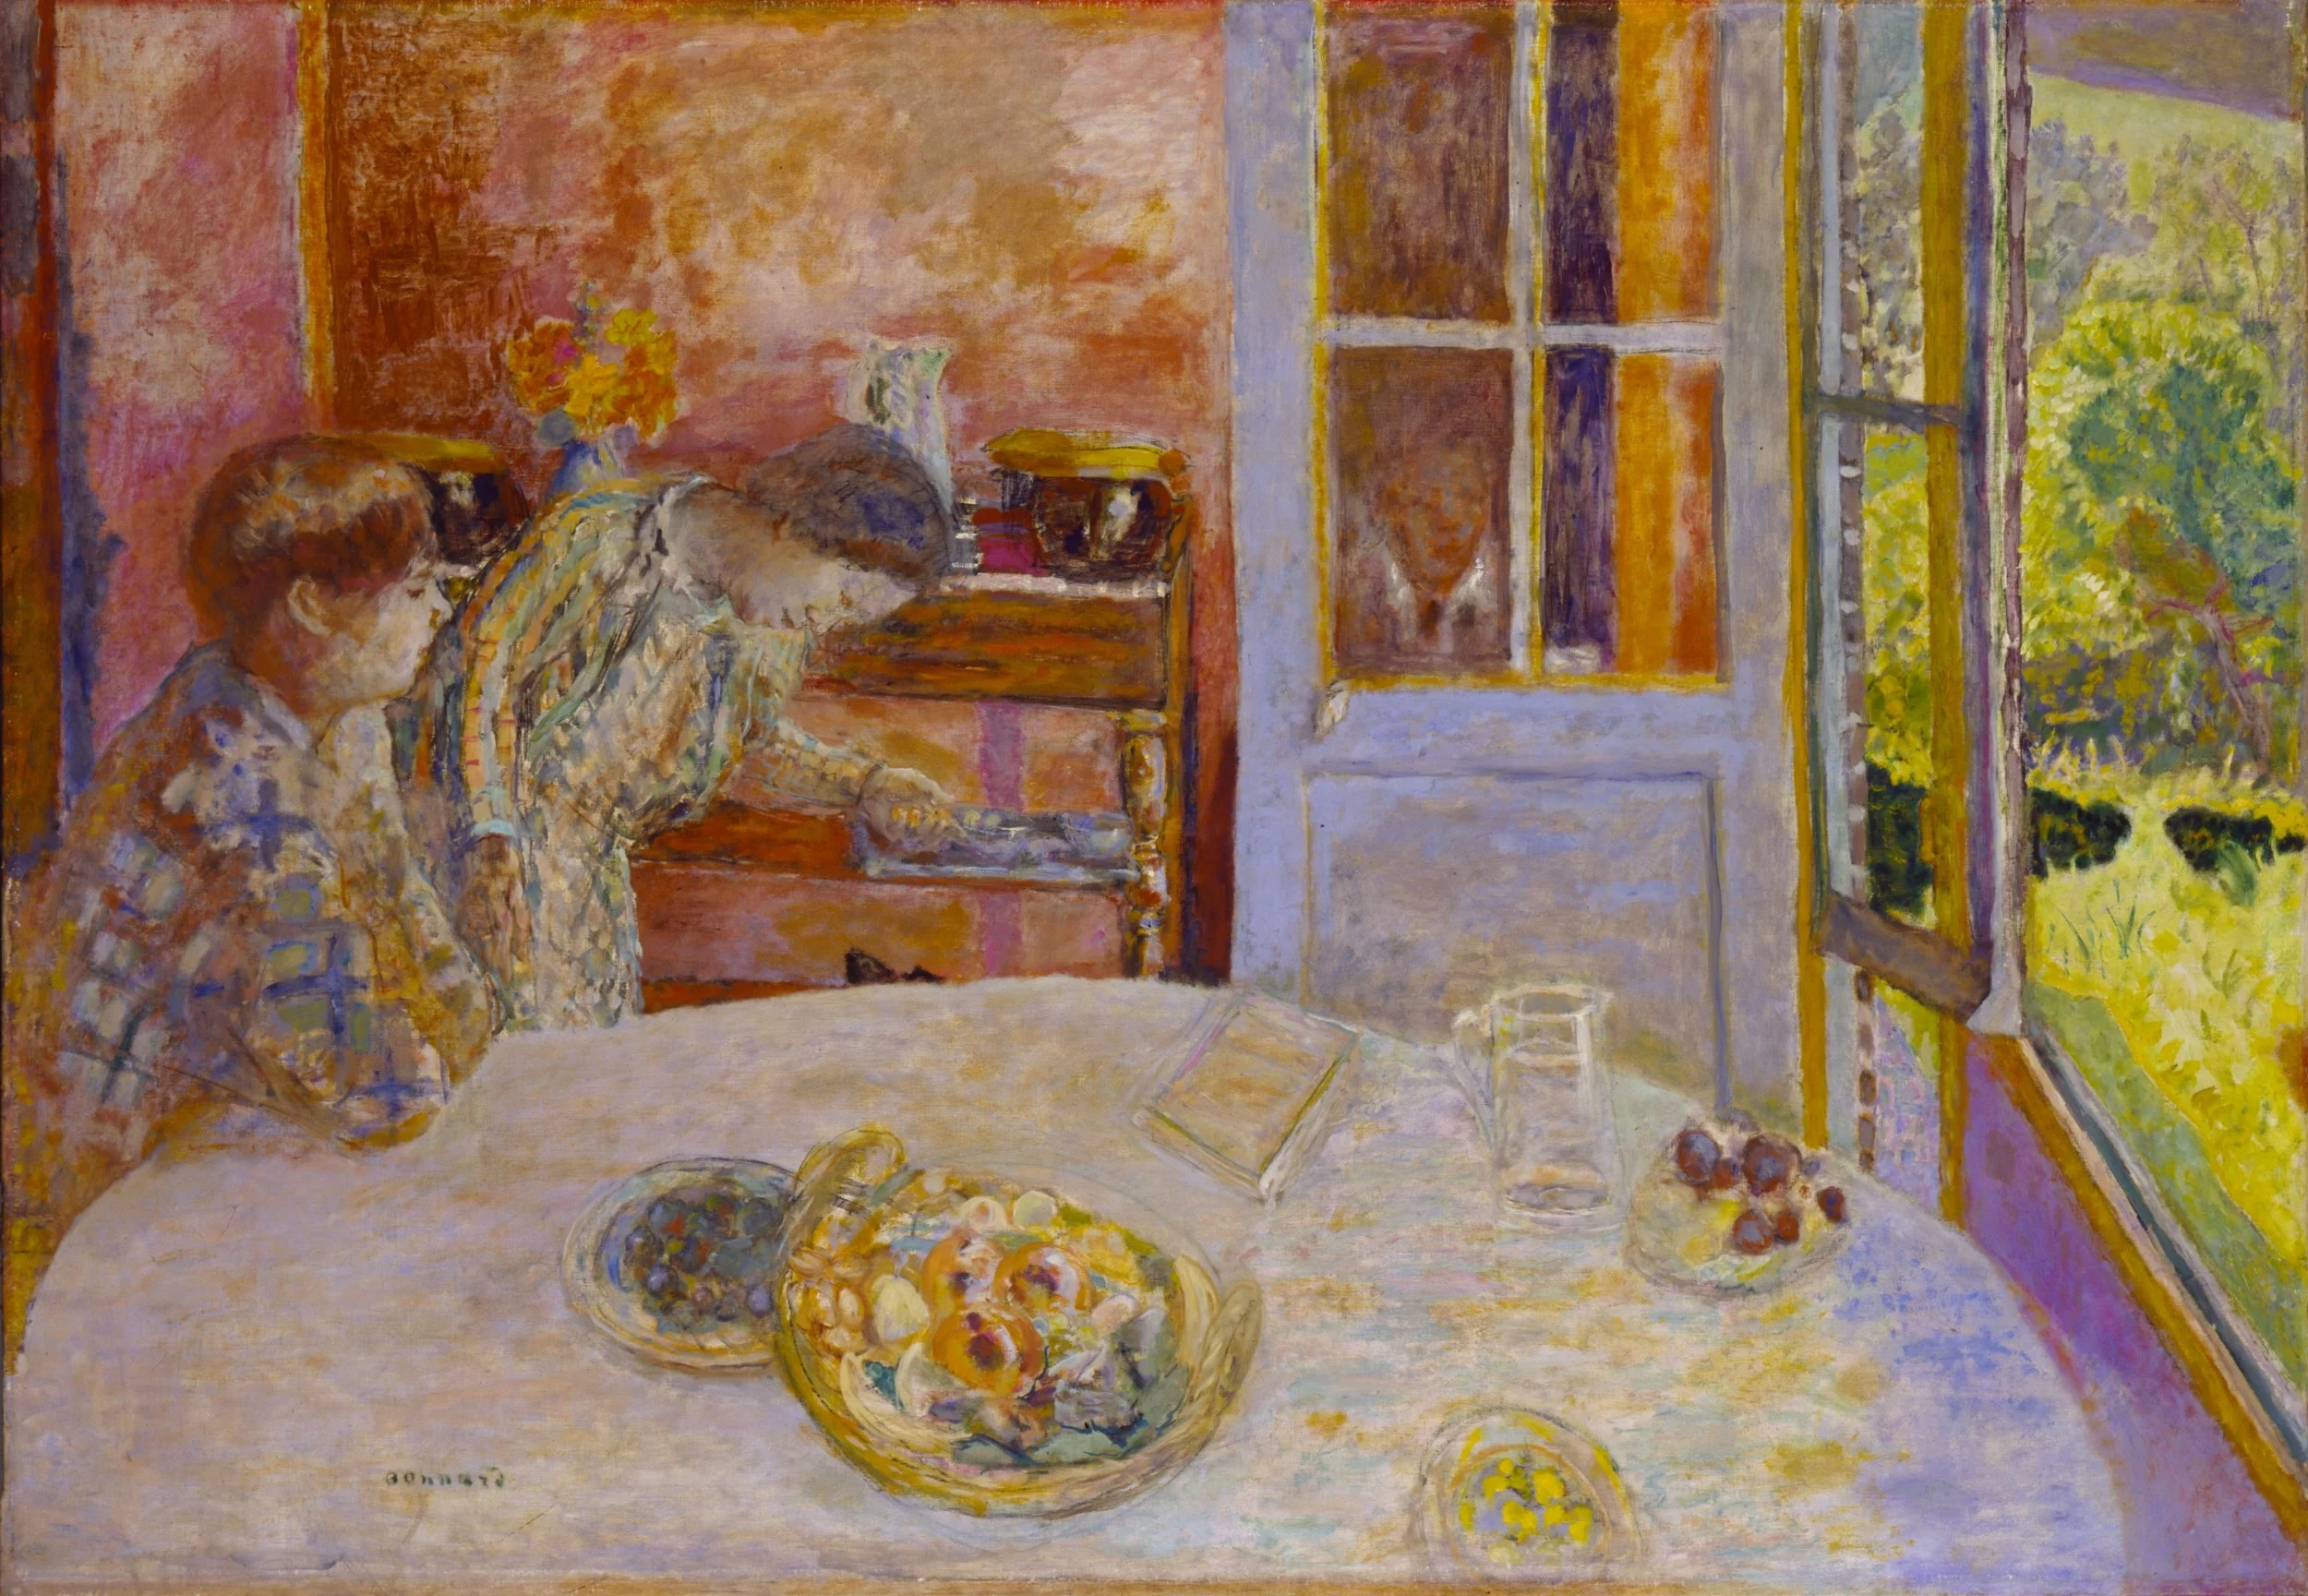 Tate Modern strips frames from five Pierre Bonnard paintings to recreate his studio style in